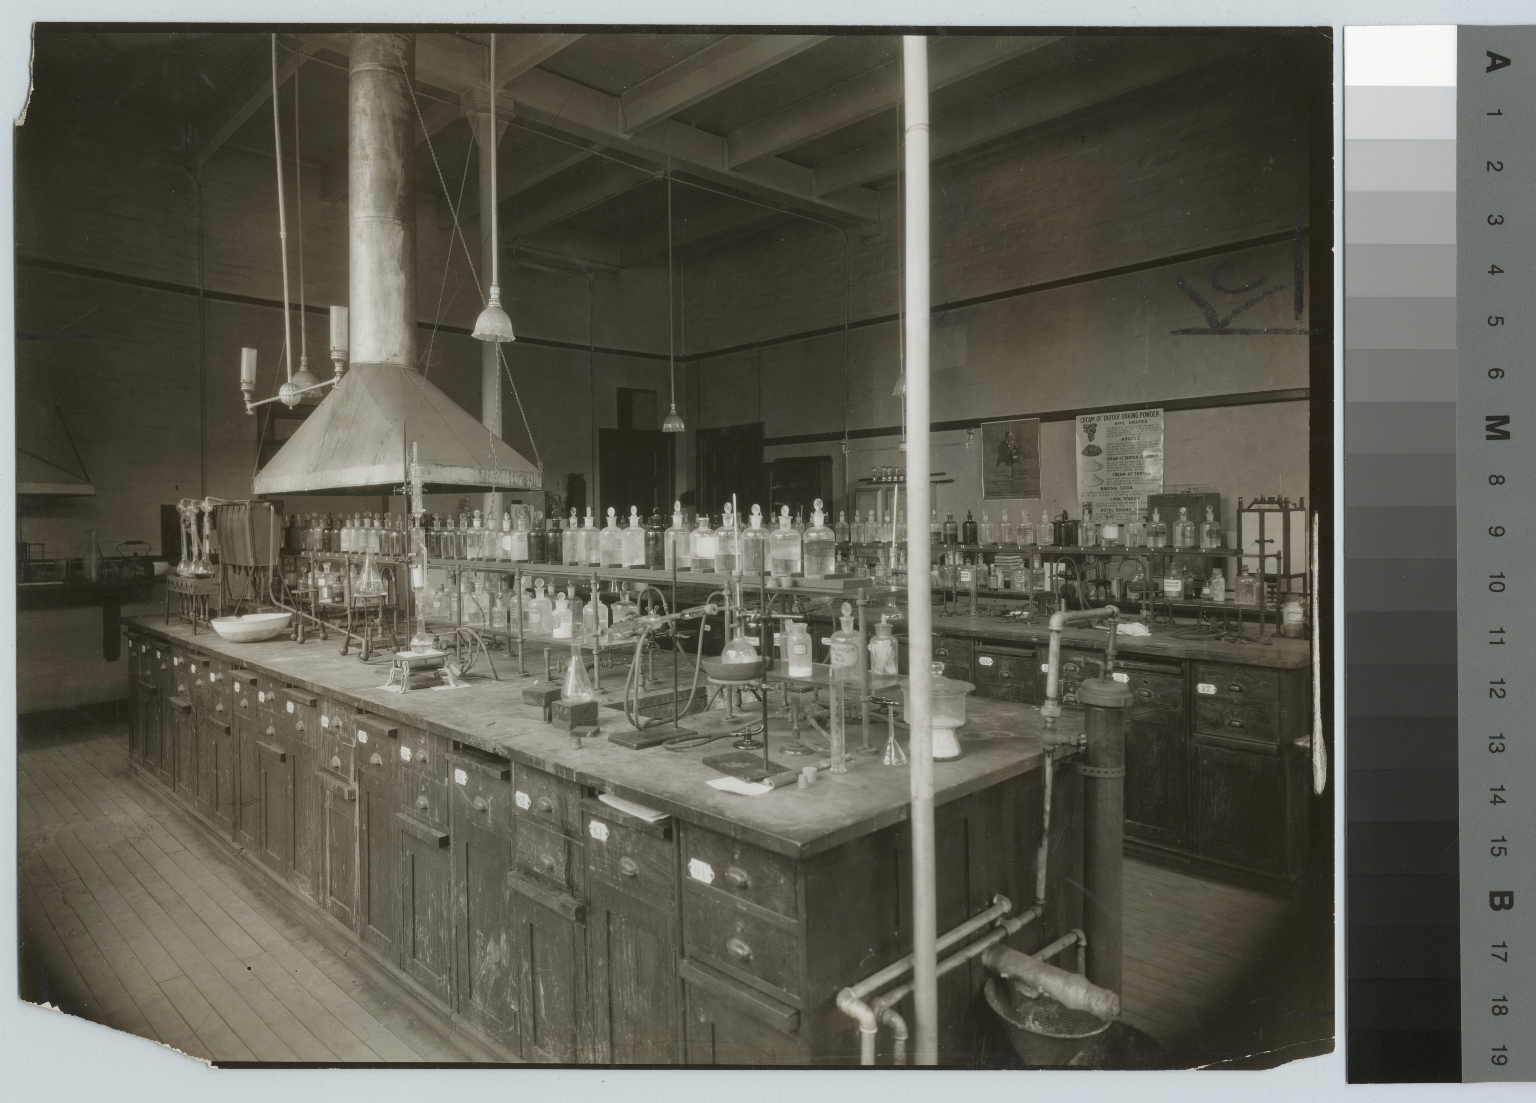 Academics, chemistry, interior view of a Rochester Athenaeum and Mechanics Institute chemistry laboratory, [1900-1920]